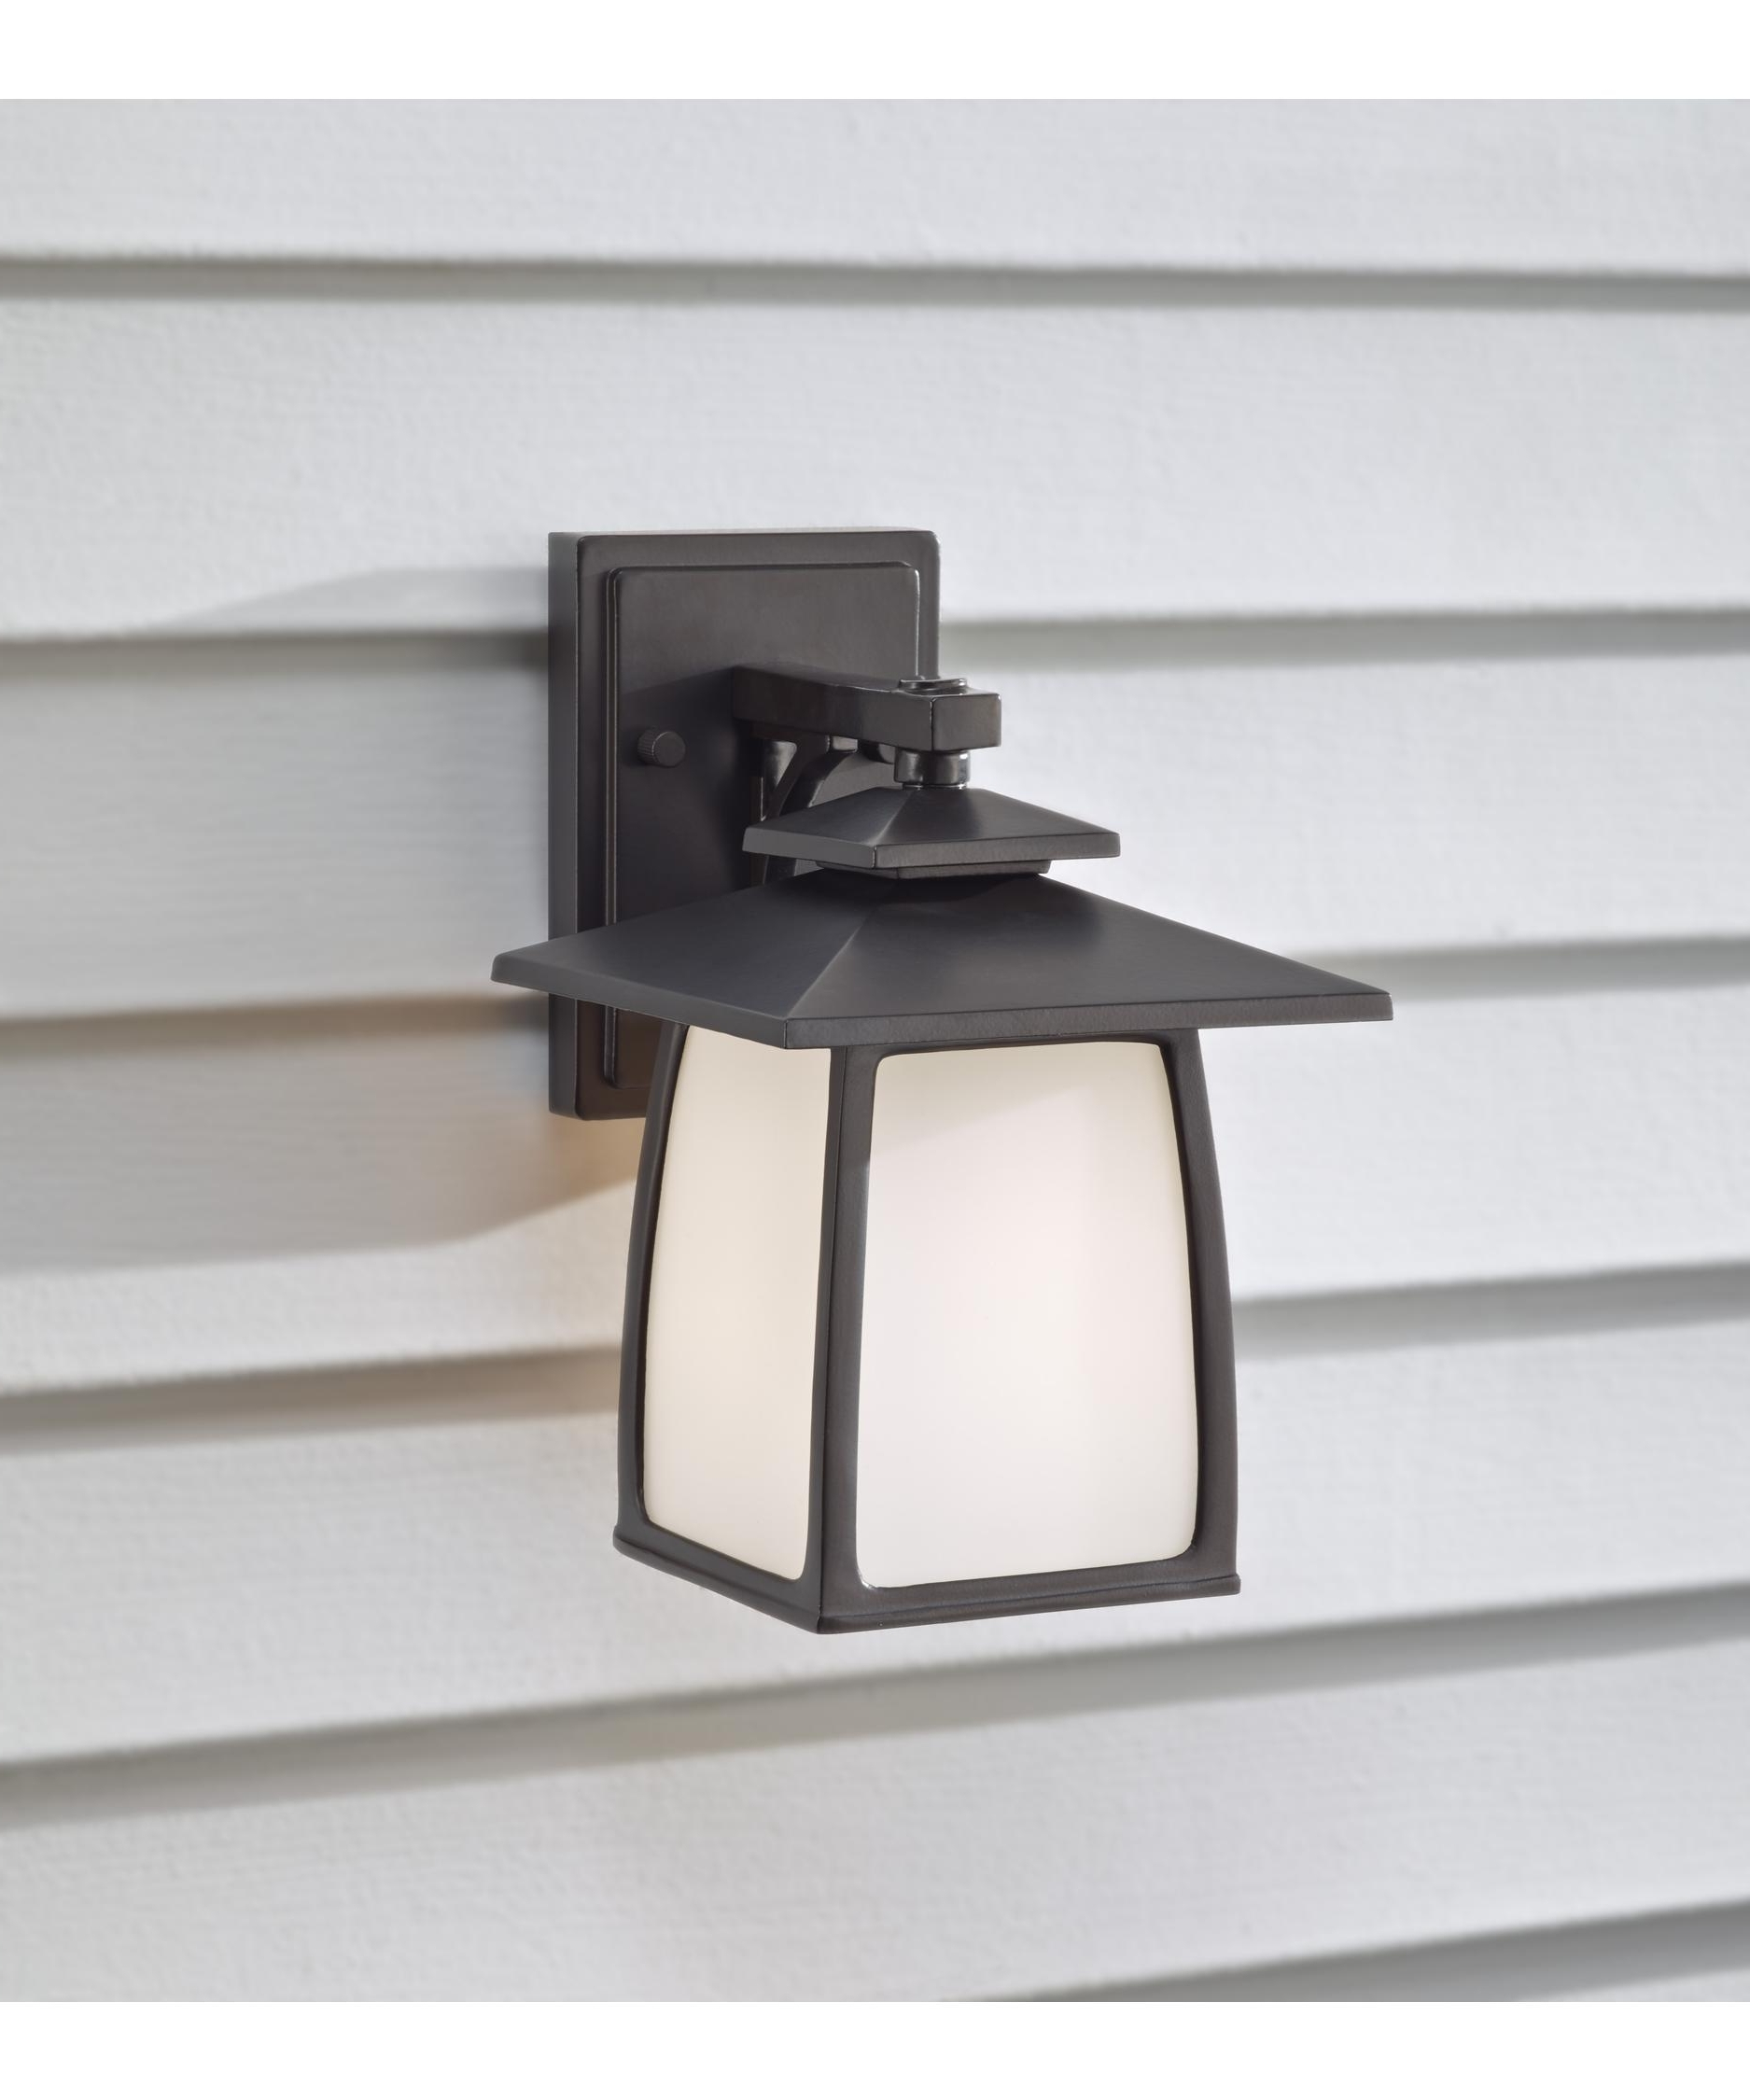 Big Outdoor Wall Lighting With Widely Used Murray Feiss Ol8500 Wright House 7 Inch Wide 1 Light Outdoor Wall (Gallery 18 of 20)